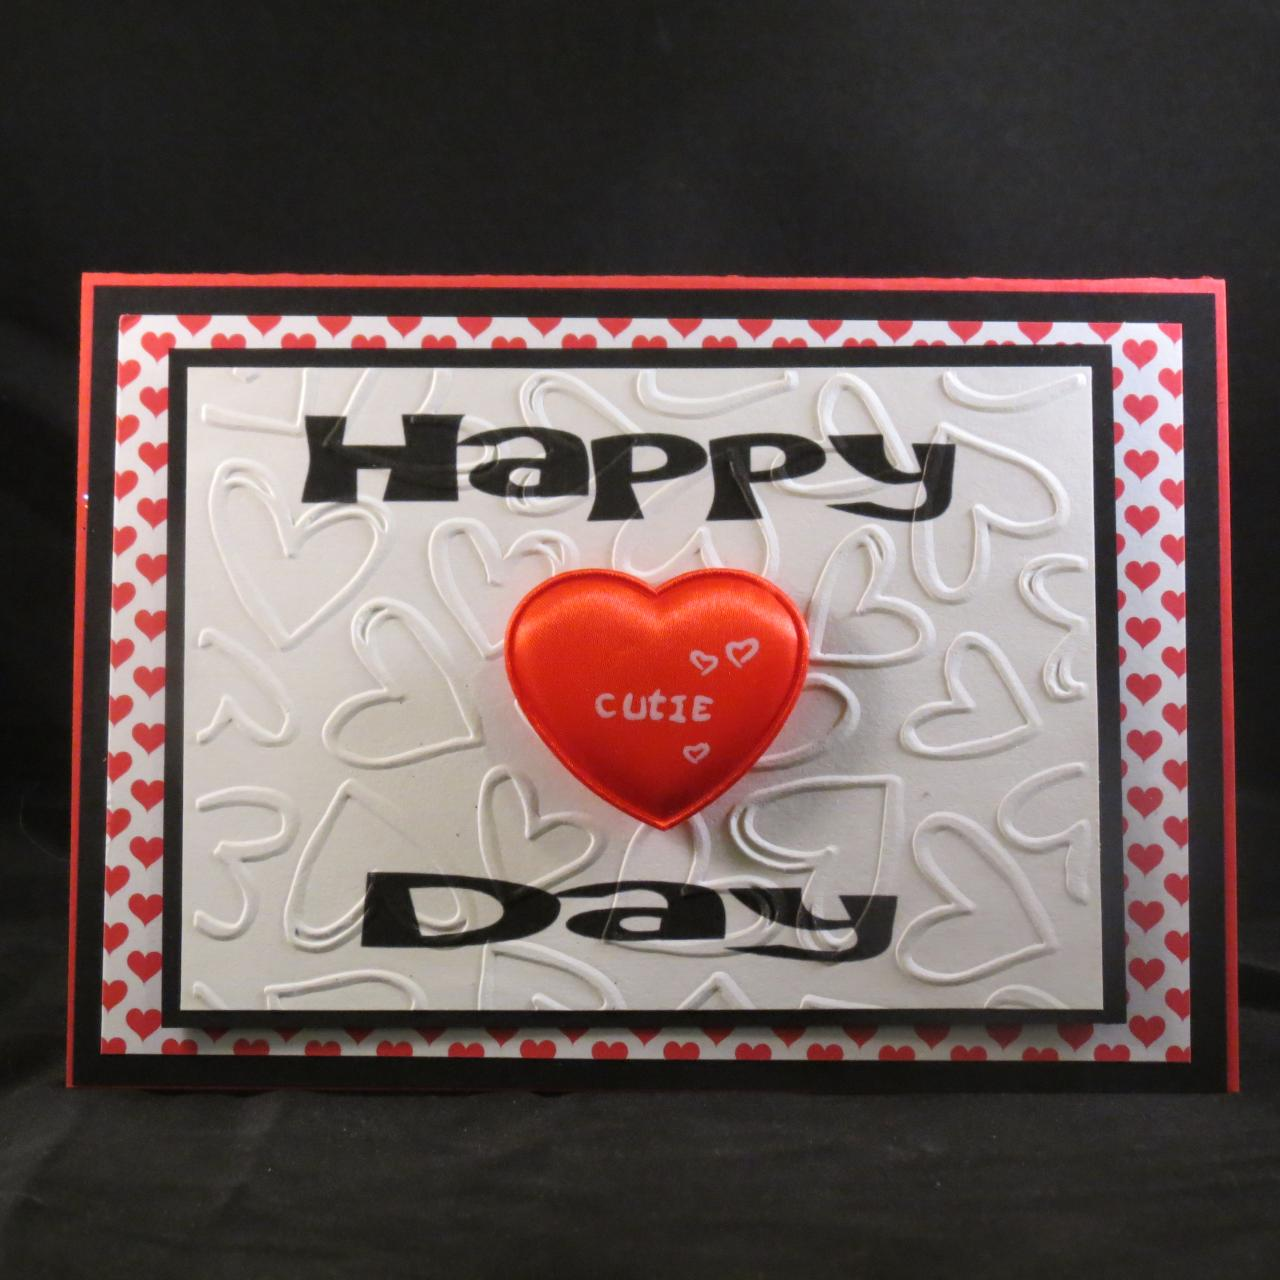 happy heart day pop up card